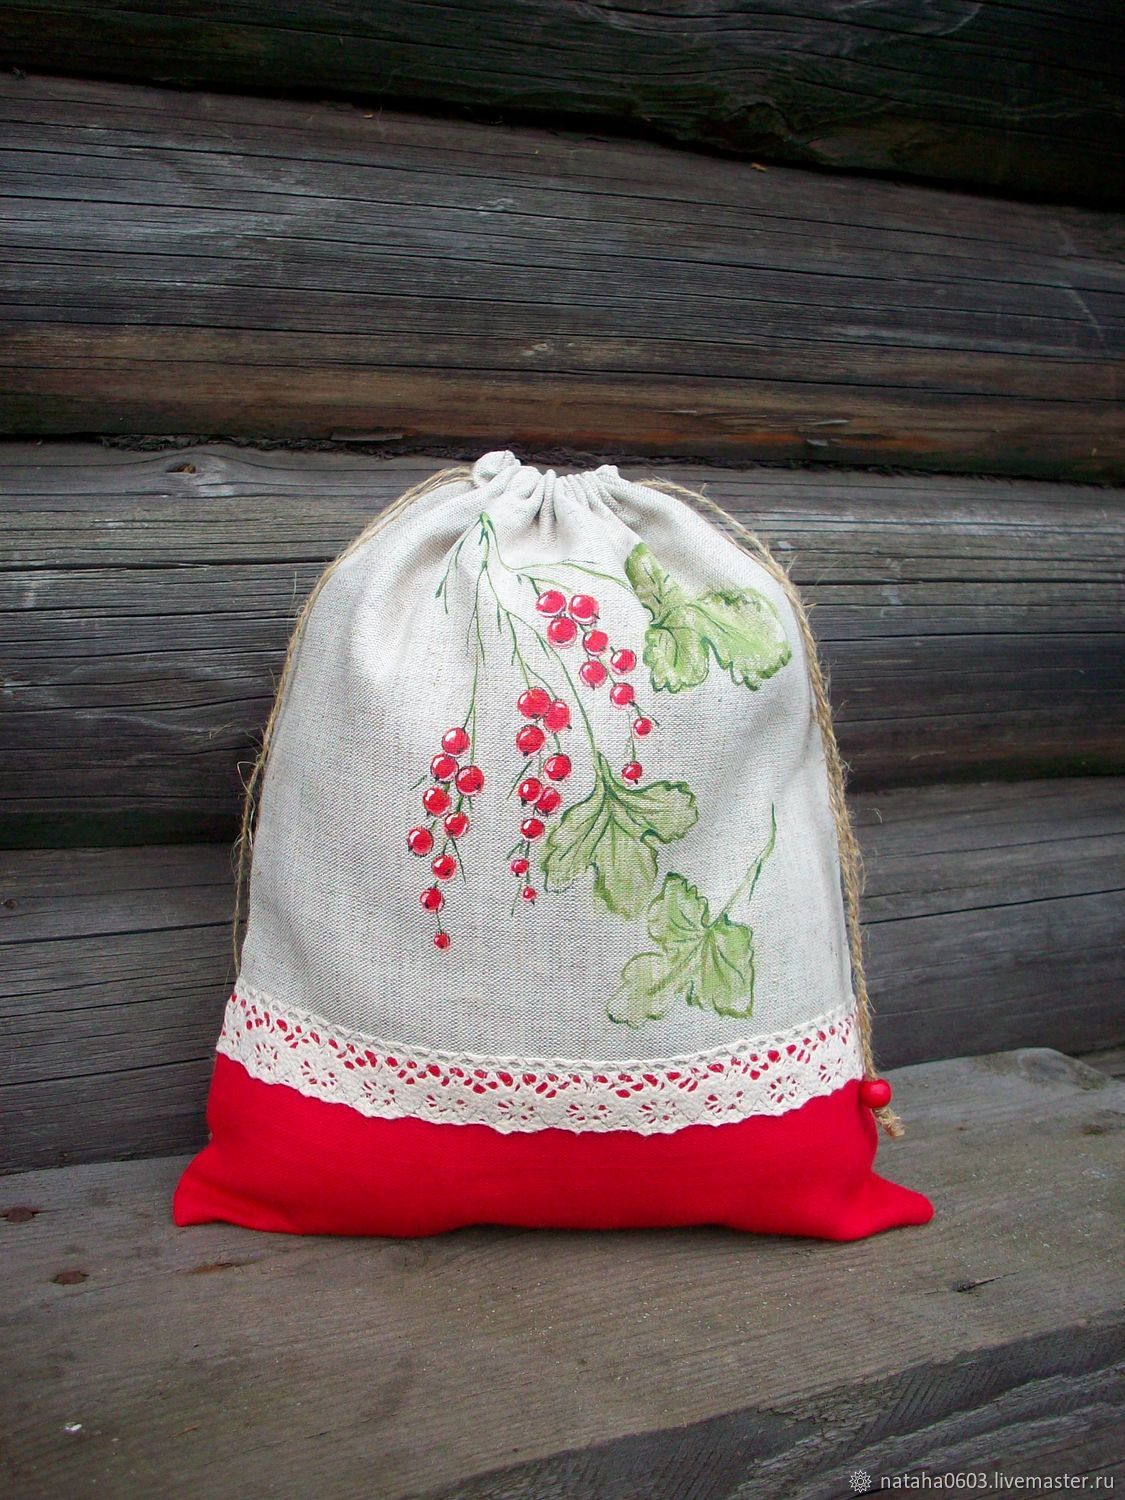 Linen bag for bread painted Red currants, Bags, Shuya, Фото №1